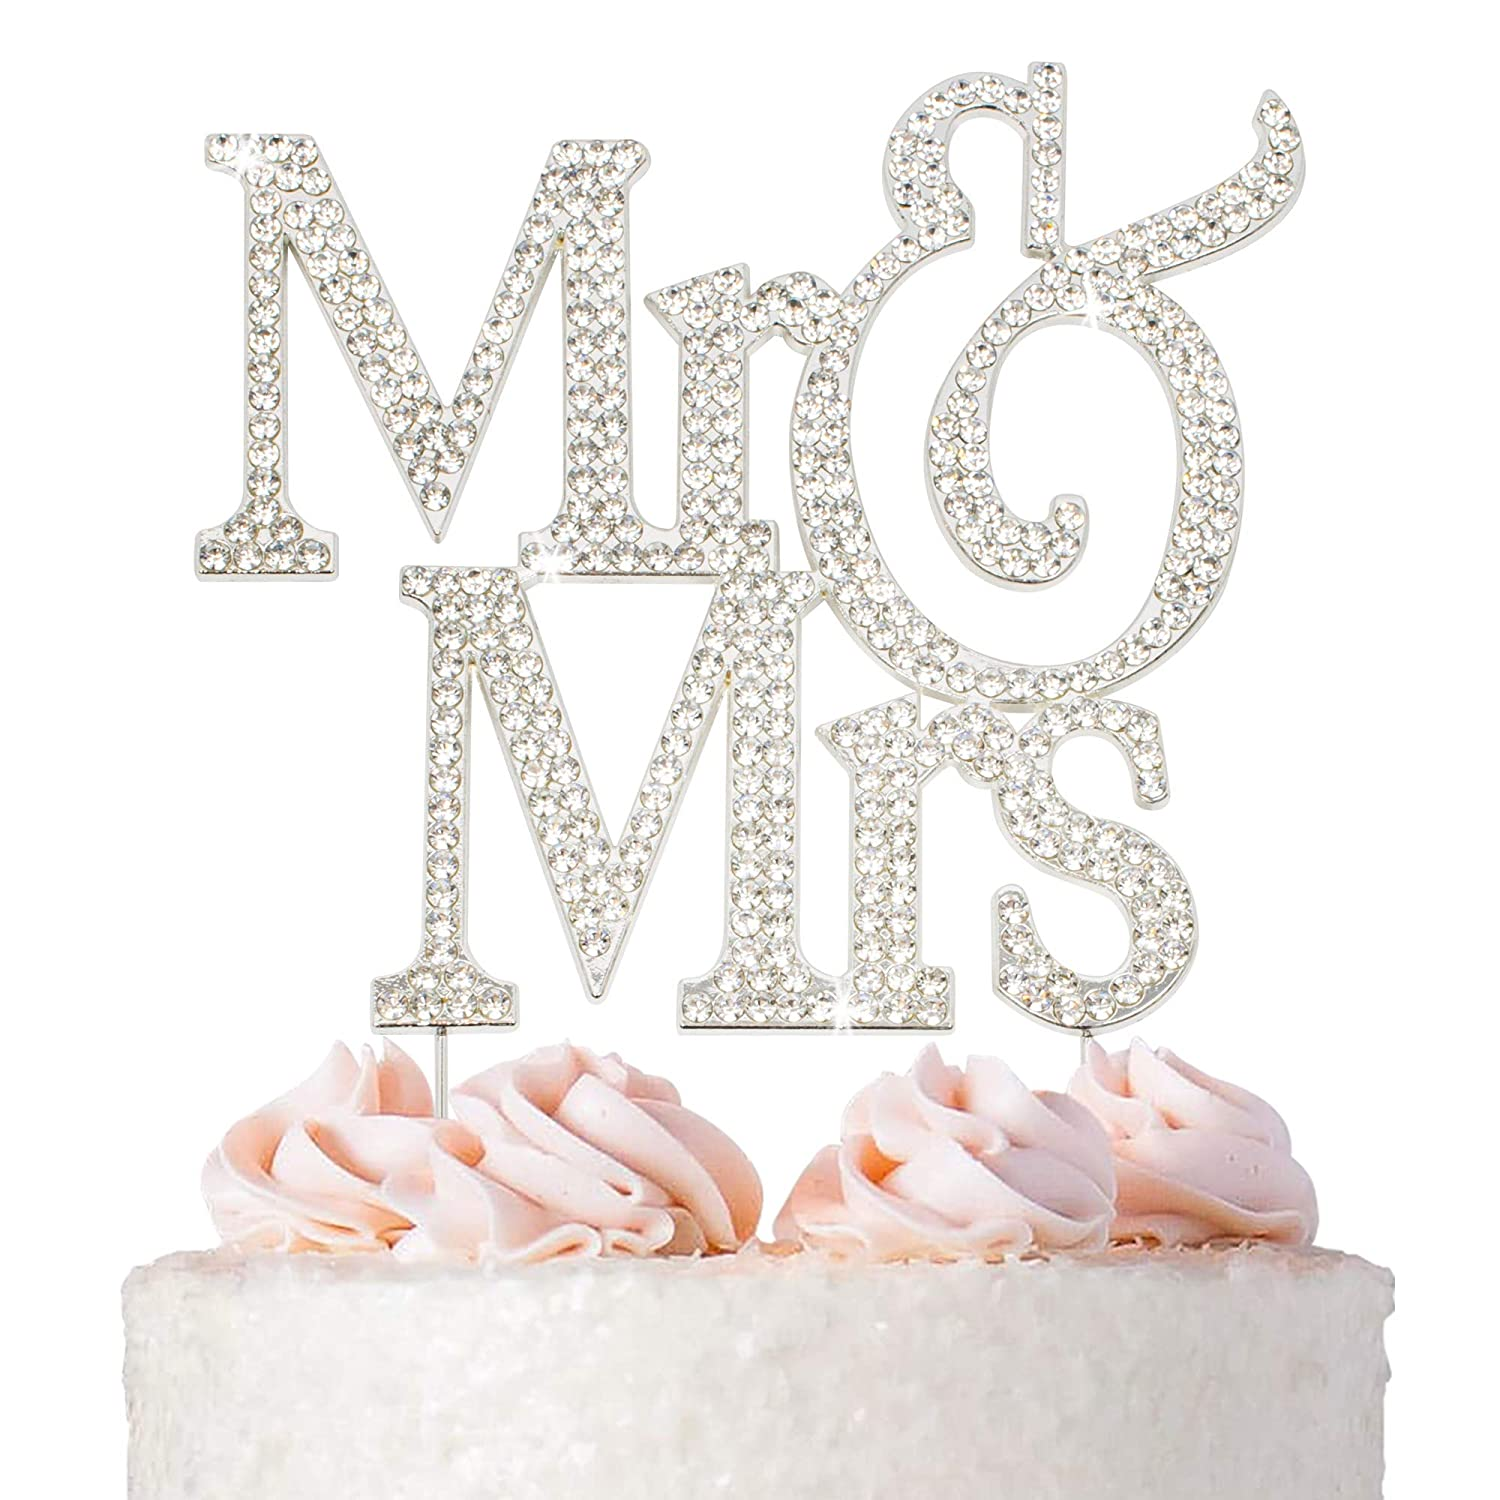 Mr and Max 73% OFF Mrs Wedding Cake Topper - Max 48% OFF Silver Sparkly Metal Premium